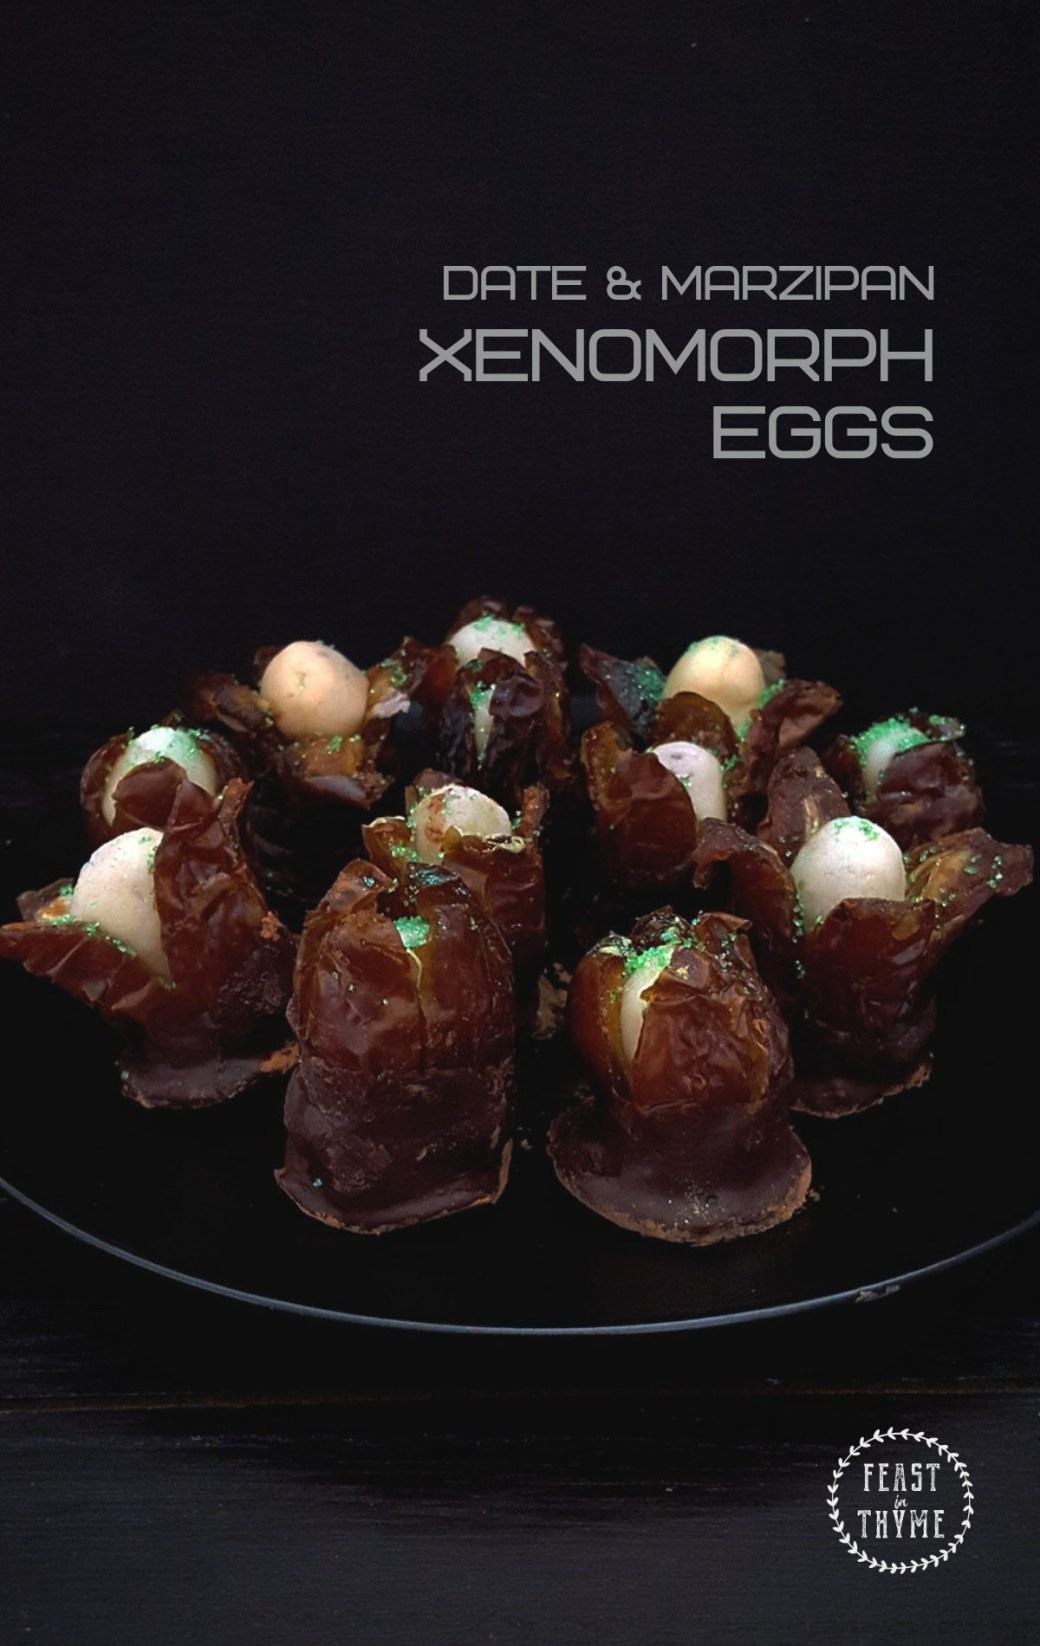 Simple Marzipan Stuffed Dates are given the Hollywood treatment with this terrifying Halloween recipe for Alien  Xenomorph Eggs. #fictionalfood #scifi #xenomorph #halloween | FeastInThyme